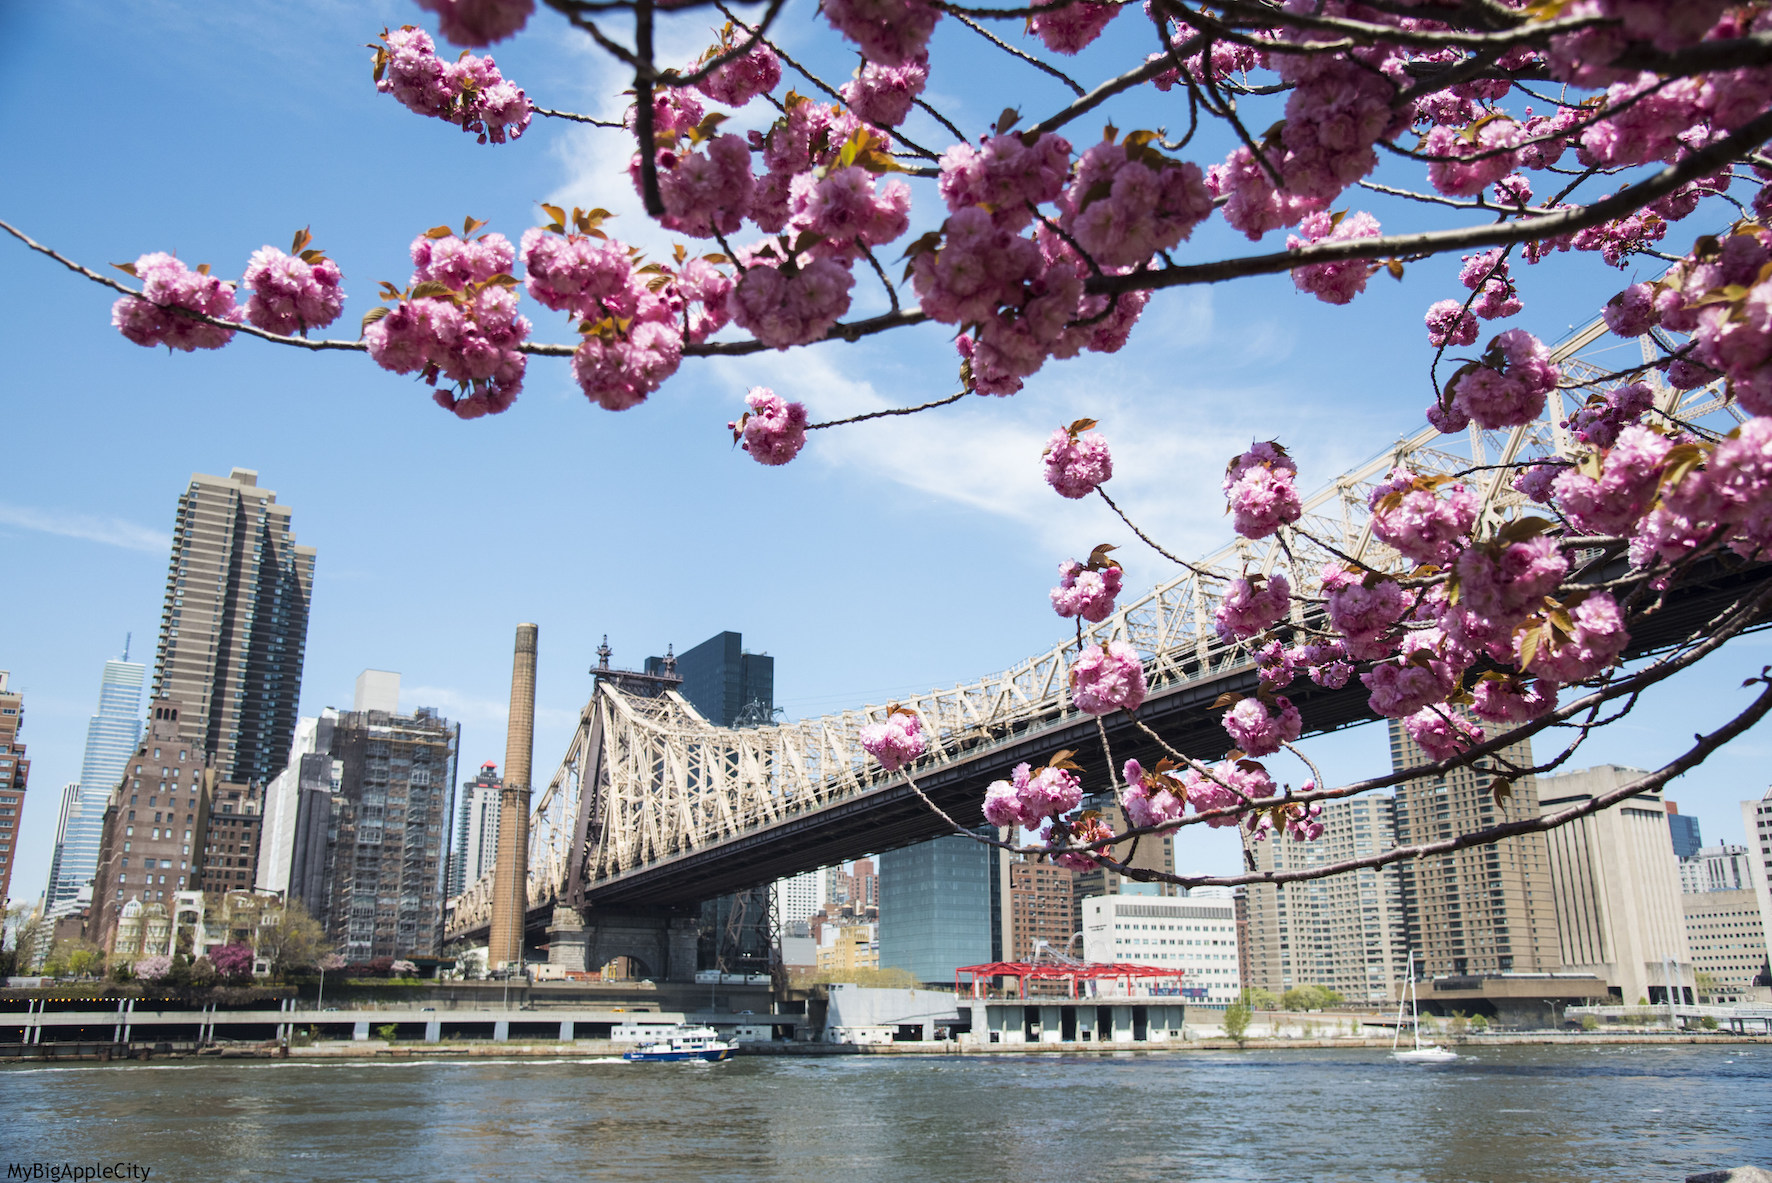 http://mybigapplecity.com/wp-content/uploads/2015/05/Spring-Cherry-blossom-tree-pink-New-York-Travel.jpg